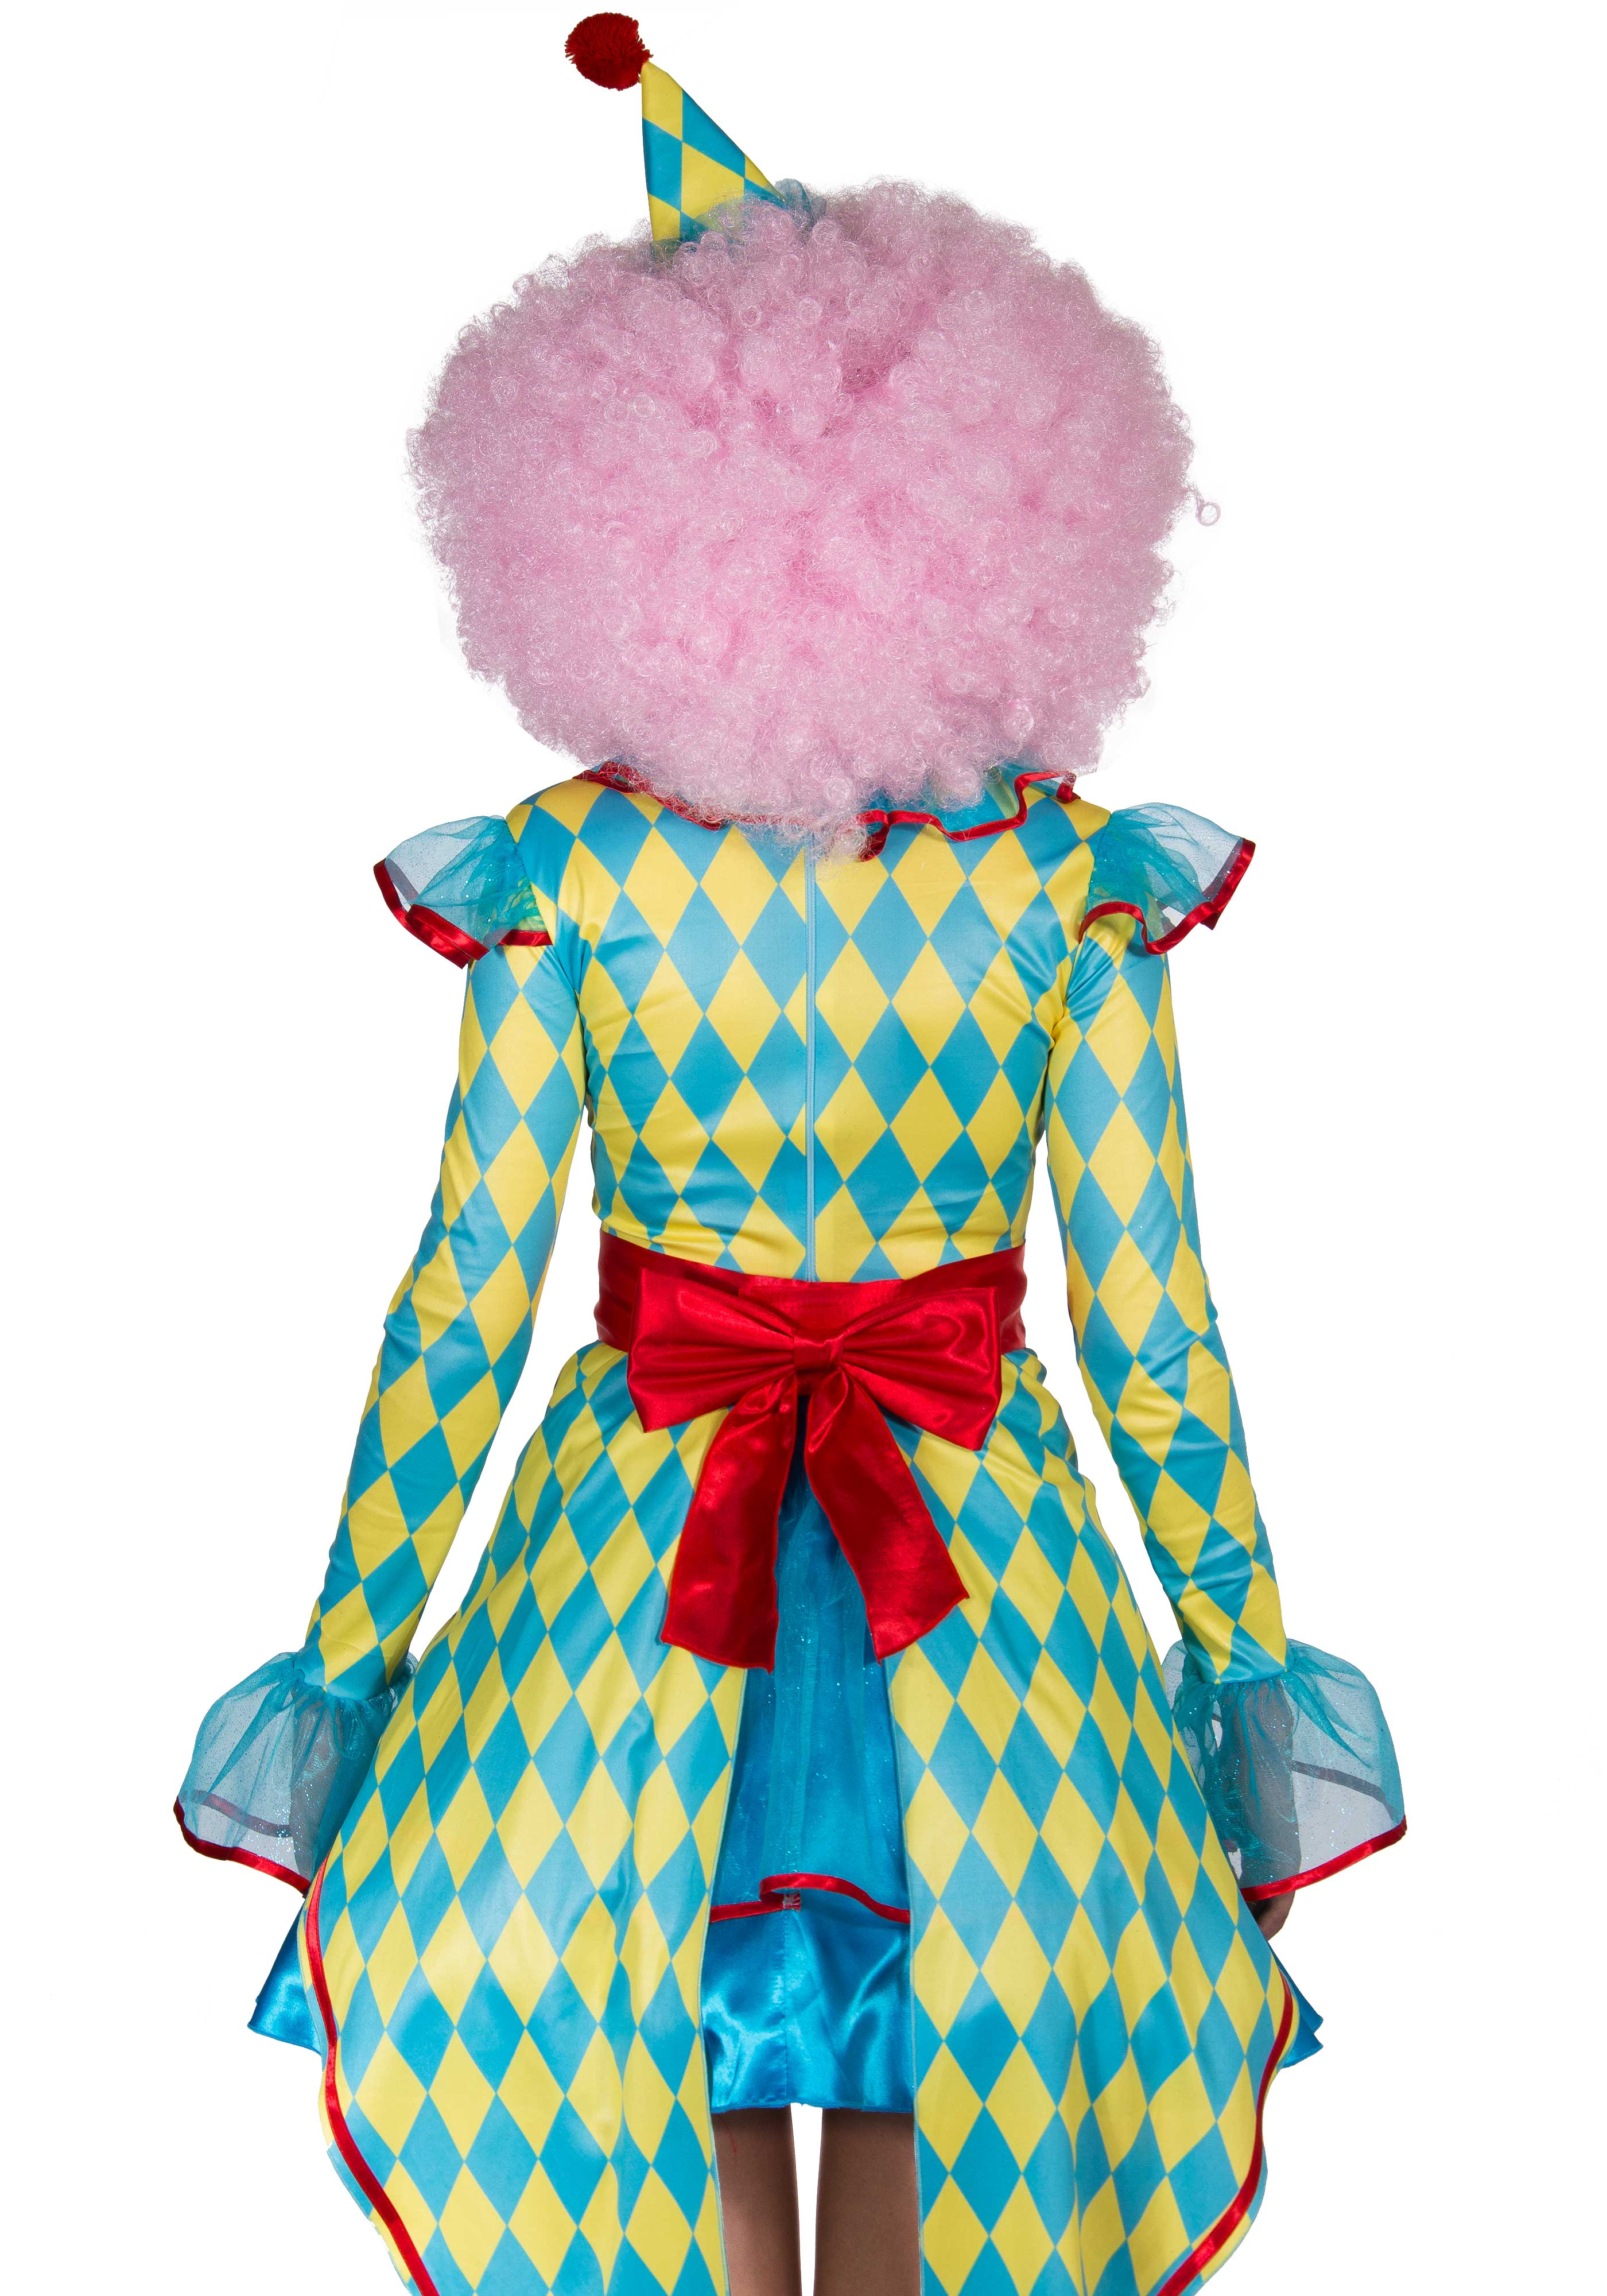 4 PC. Deluxe Carnival Clown costume, includes diamond print dress with tux tails and button accent, belt, chiffon ruffle neck piece and pom pom hat.